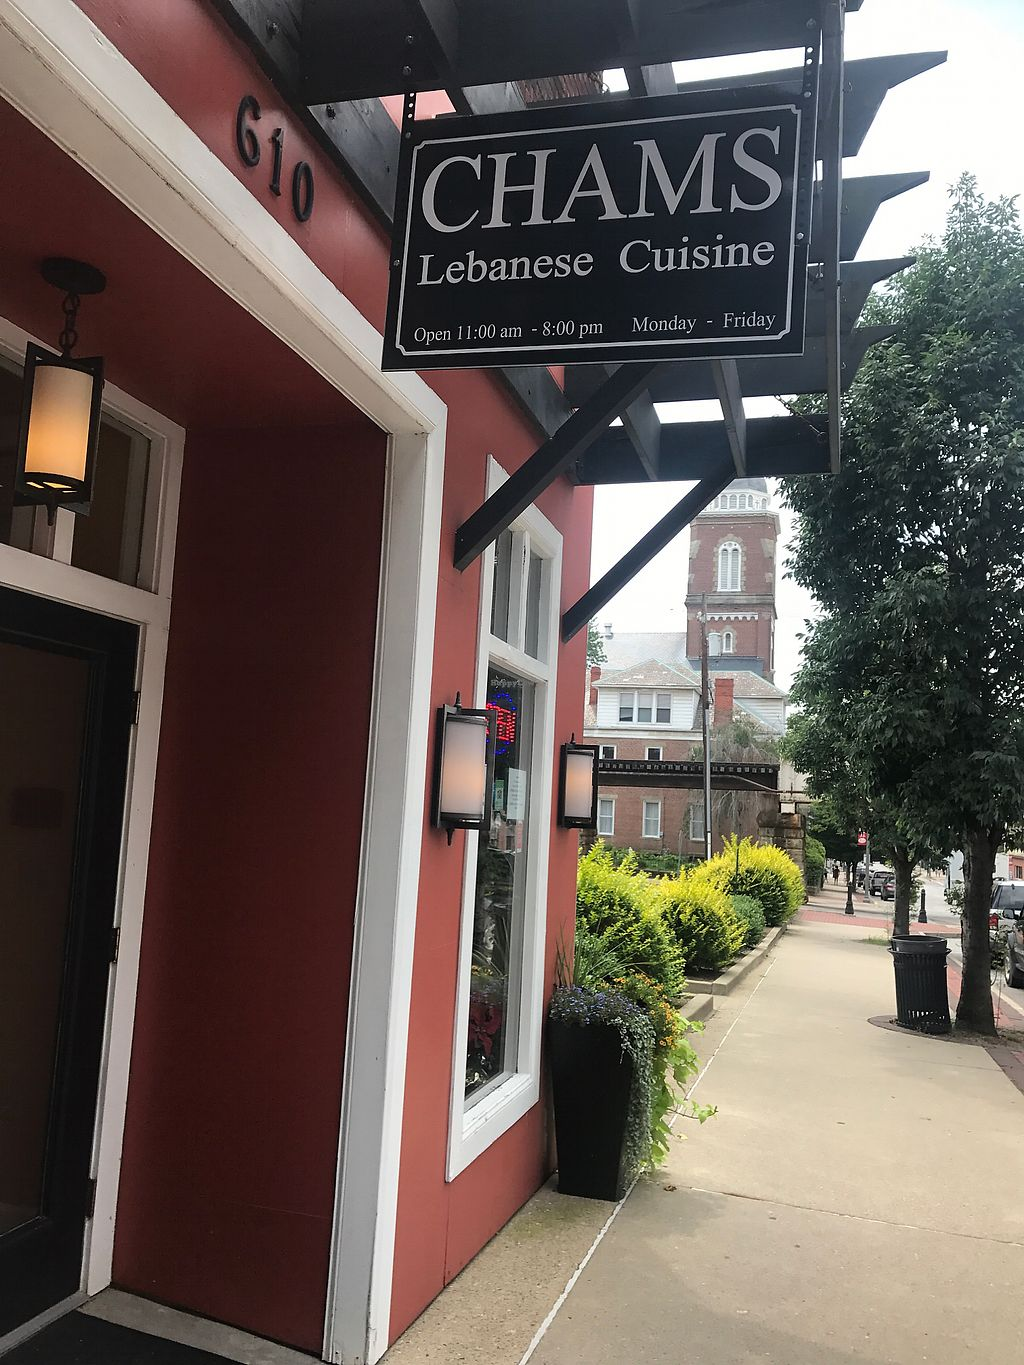 """Photo of Chams Lebanese Cuisine  by <a href=""""/members/profile/EatGoodVegFood"""">EatGoodVegFood</a> <br/>Chams Rocks! <br/> August 2, 2017  - <a href='/contact/abuse/image/97645/288001'>Report</a>"""